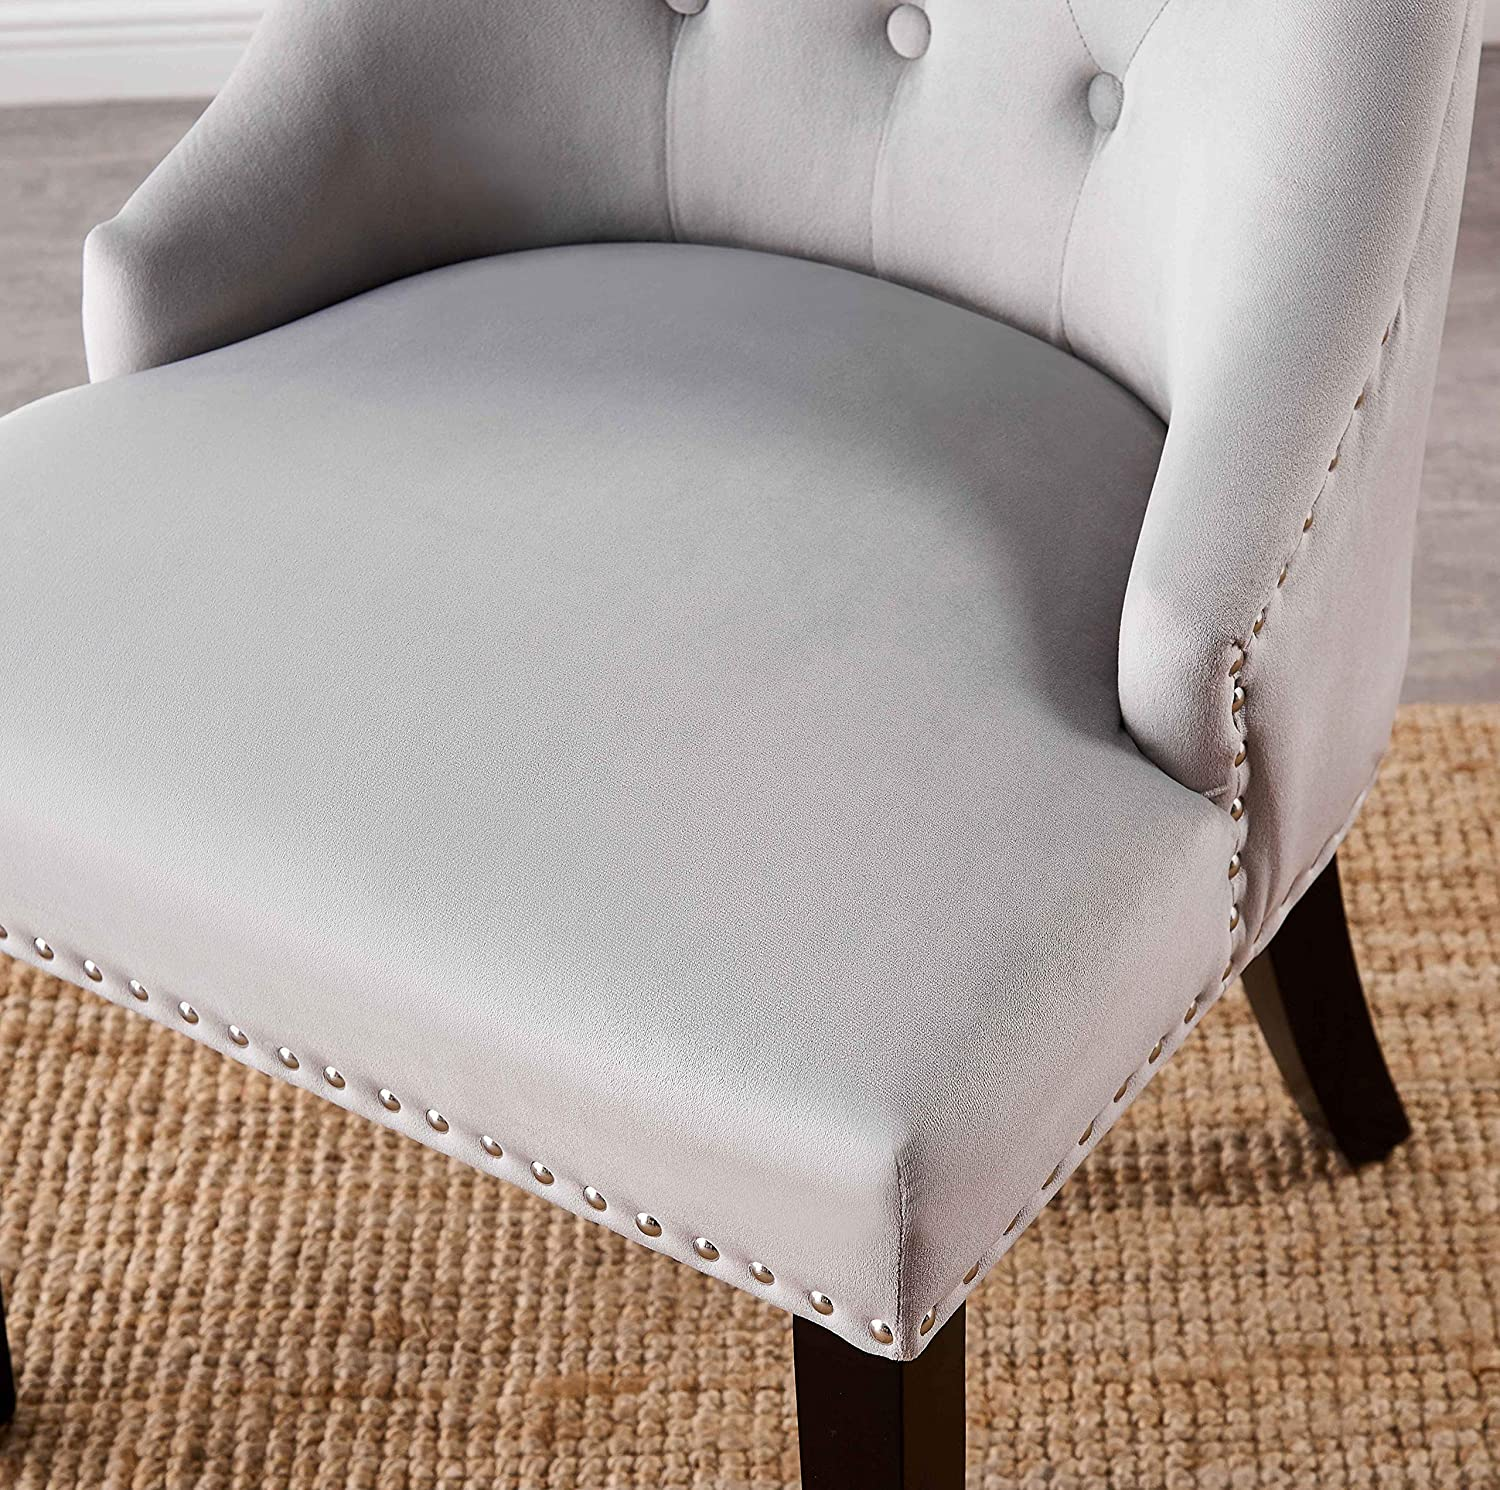 Dining Chair Studded Light Grey Upholstered Accent Side Chair Door Knocker Windsor Chair P/&N Homewares FREE NEXT DAY DELIVERY Tufted Velvet Fabric